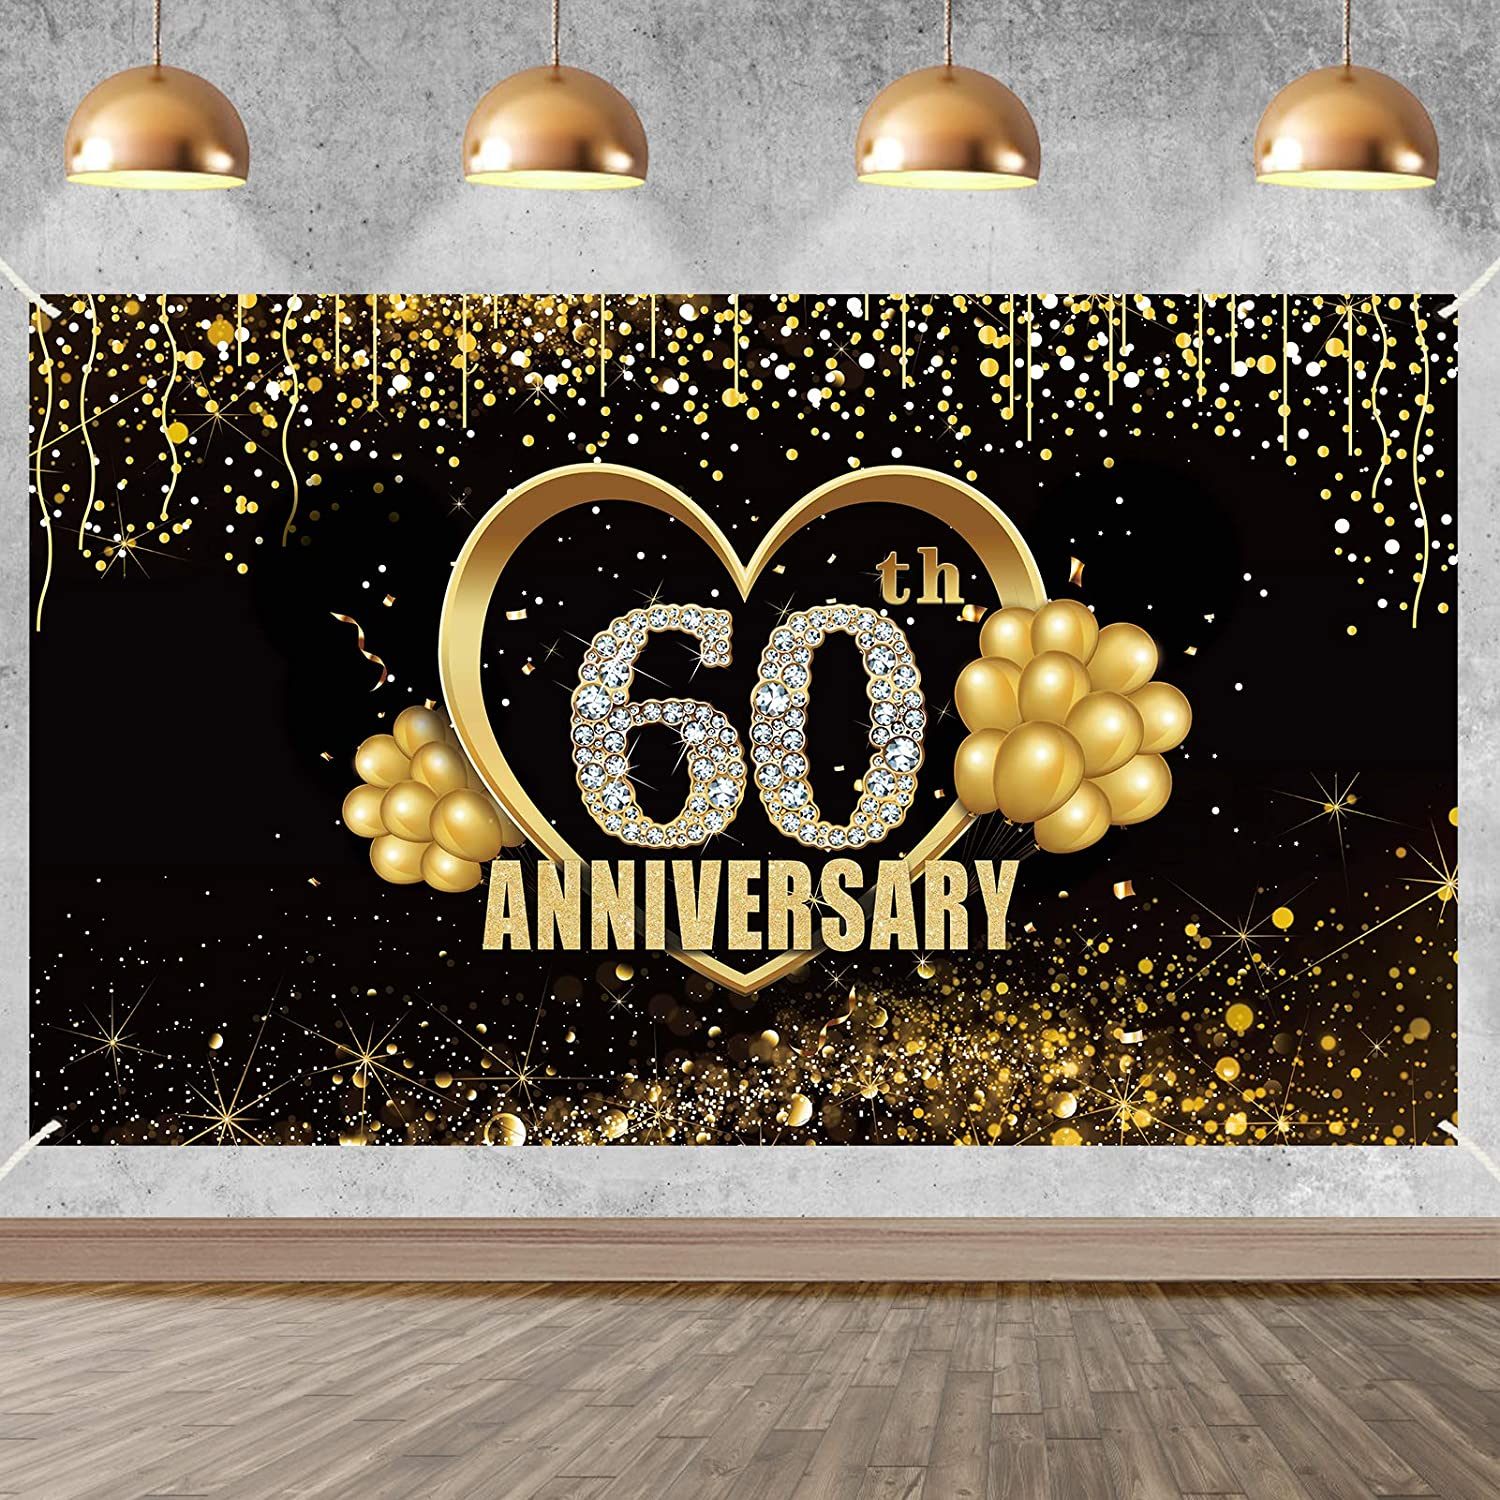 Yoaokiy 60th Wedding Anniversary Decorations for Party, Extra Large 60 Year Anniversary Party Backdrop Supplies, Extra Large Happy 60 Anniversary Decor Photo Props(6 X 3.6ft)